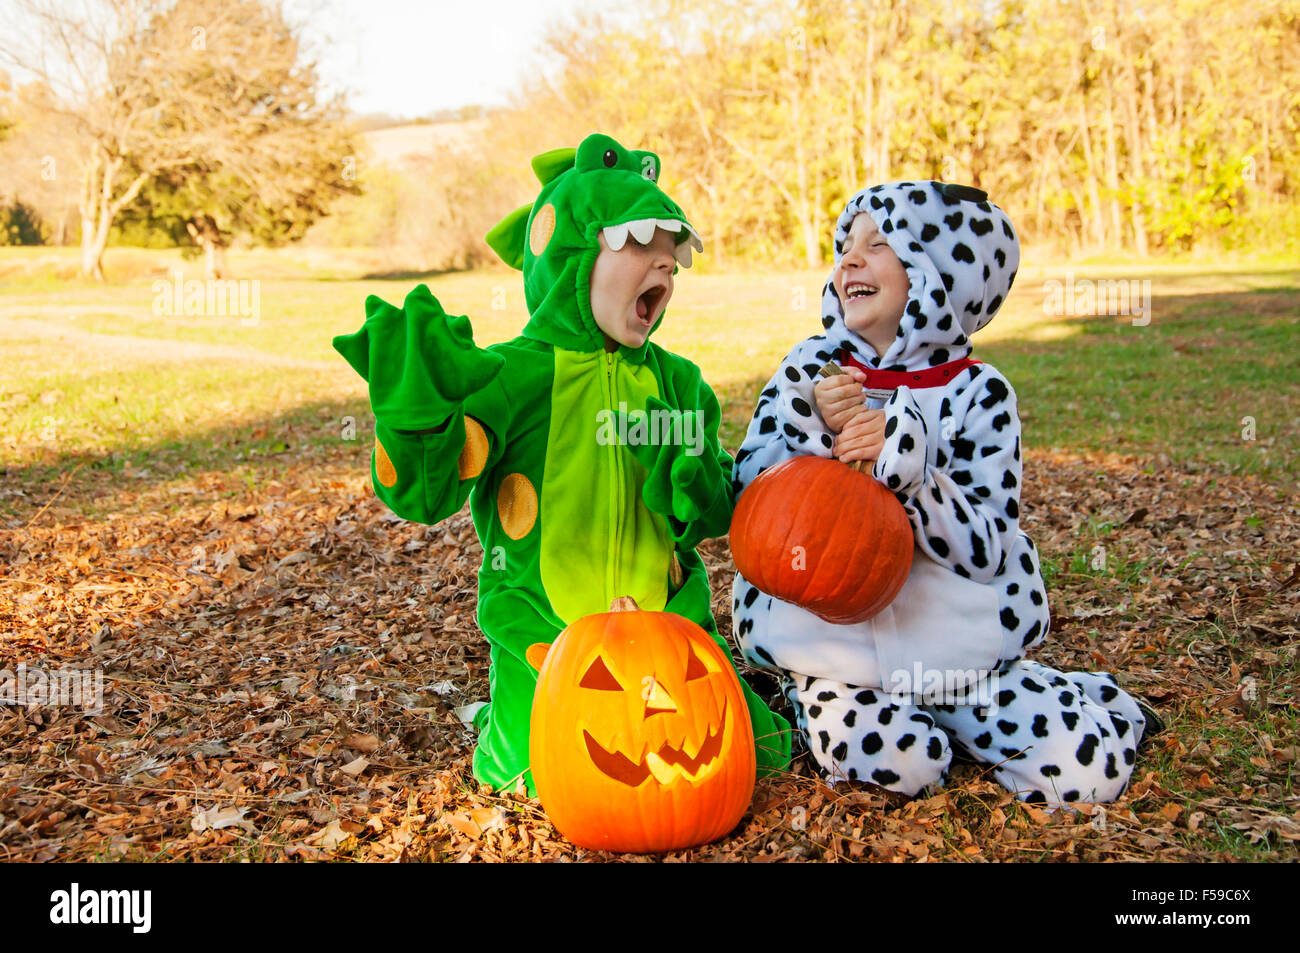 Boys in costumes playing pretend - Stock Image